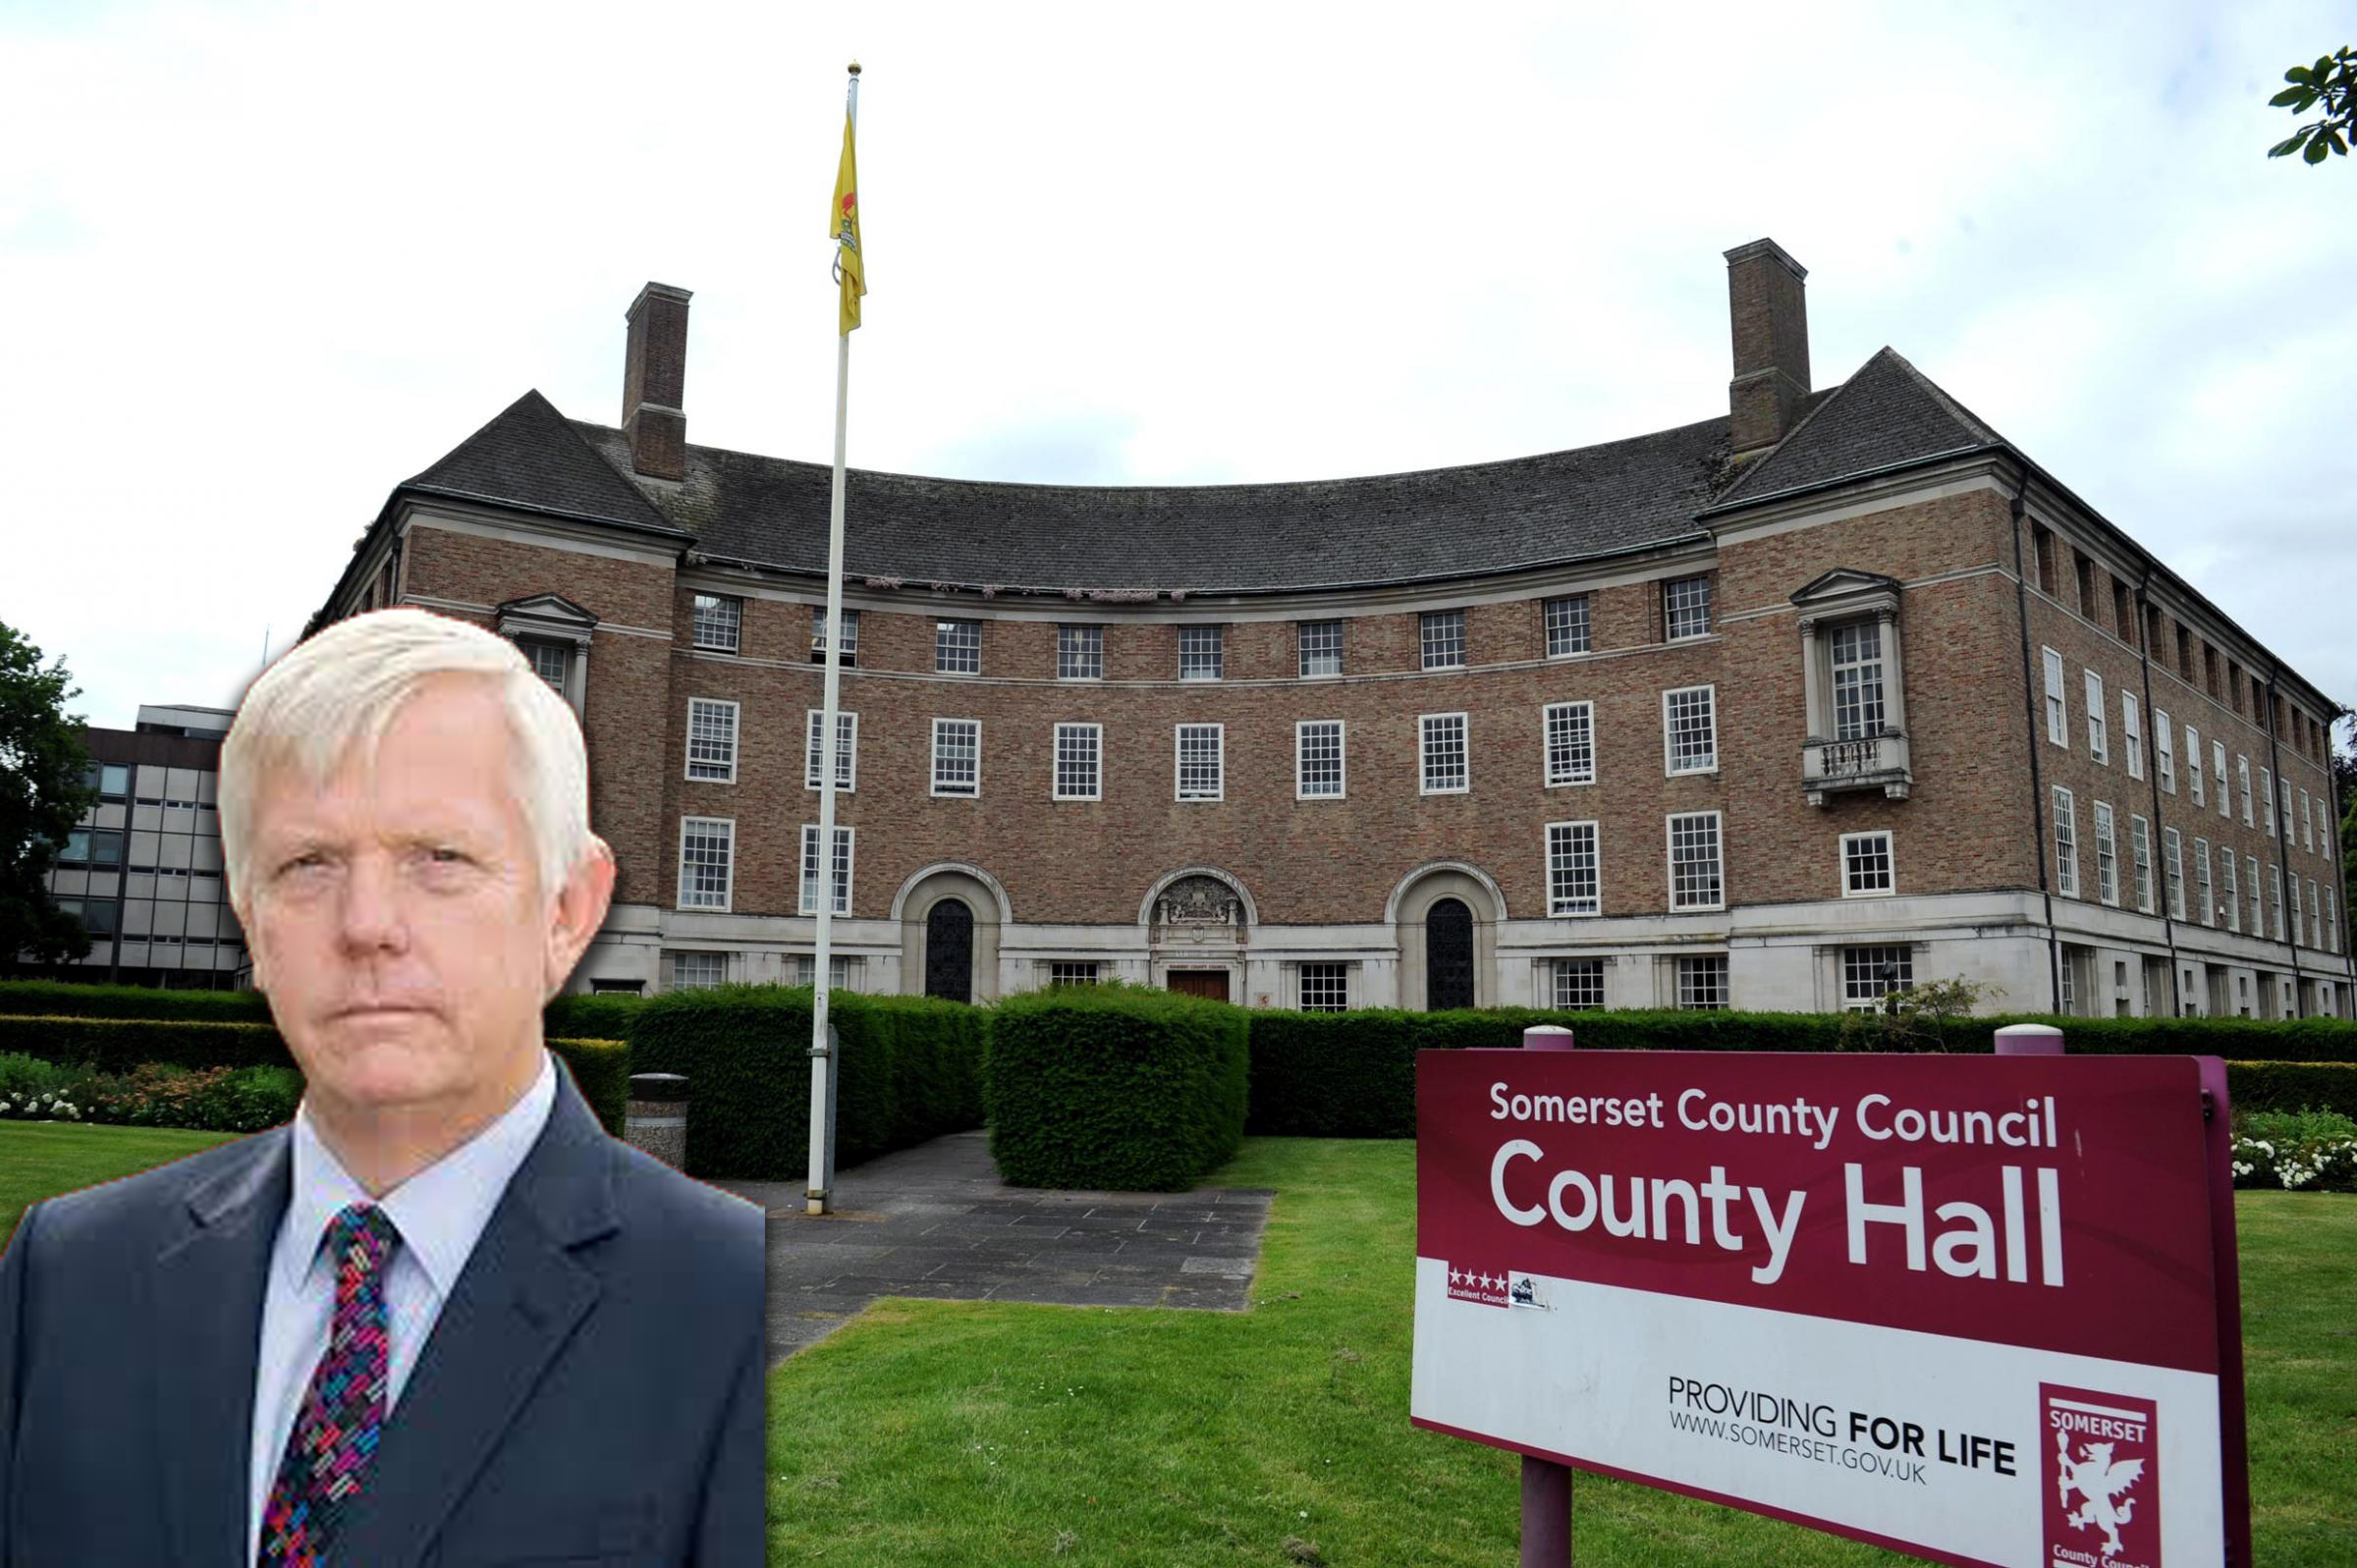 UNDER PRESSURE: Leader David Fothergill says Somerset County Council is under 'enormous pressure'